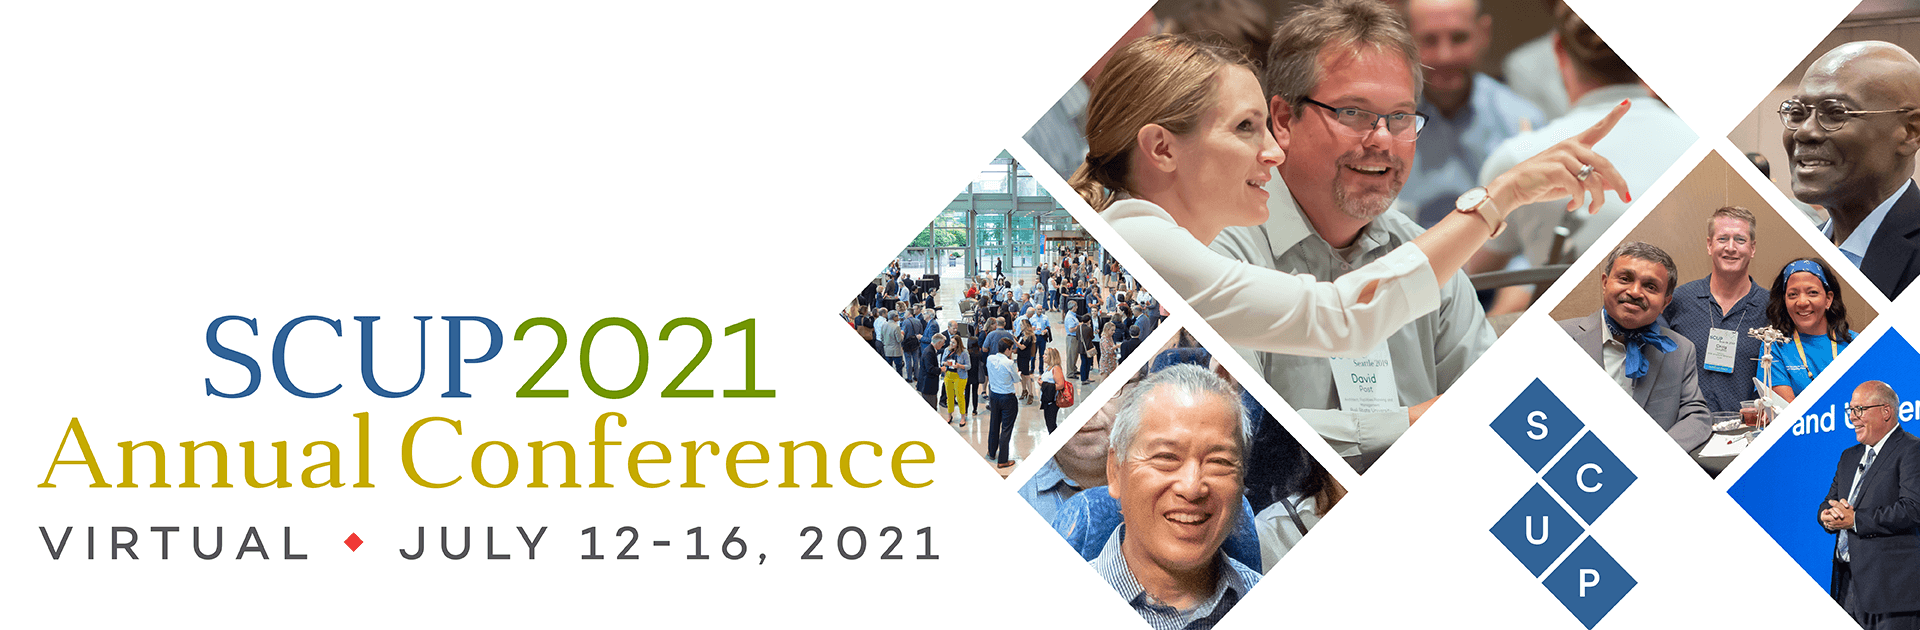 SCUP 2021 Annual Conference - Virtual July 12-16